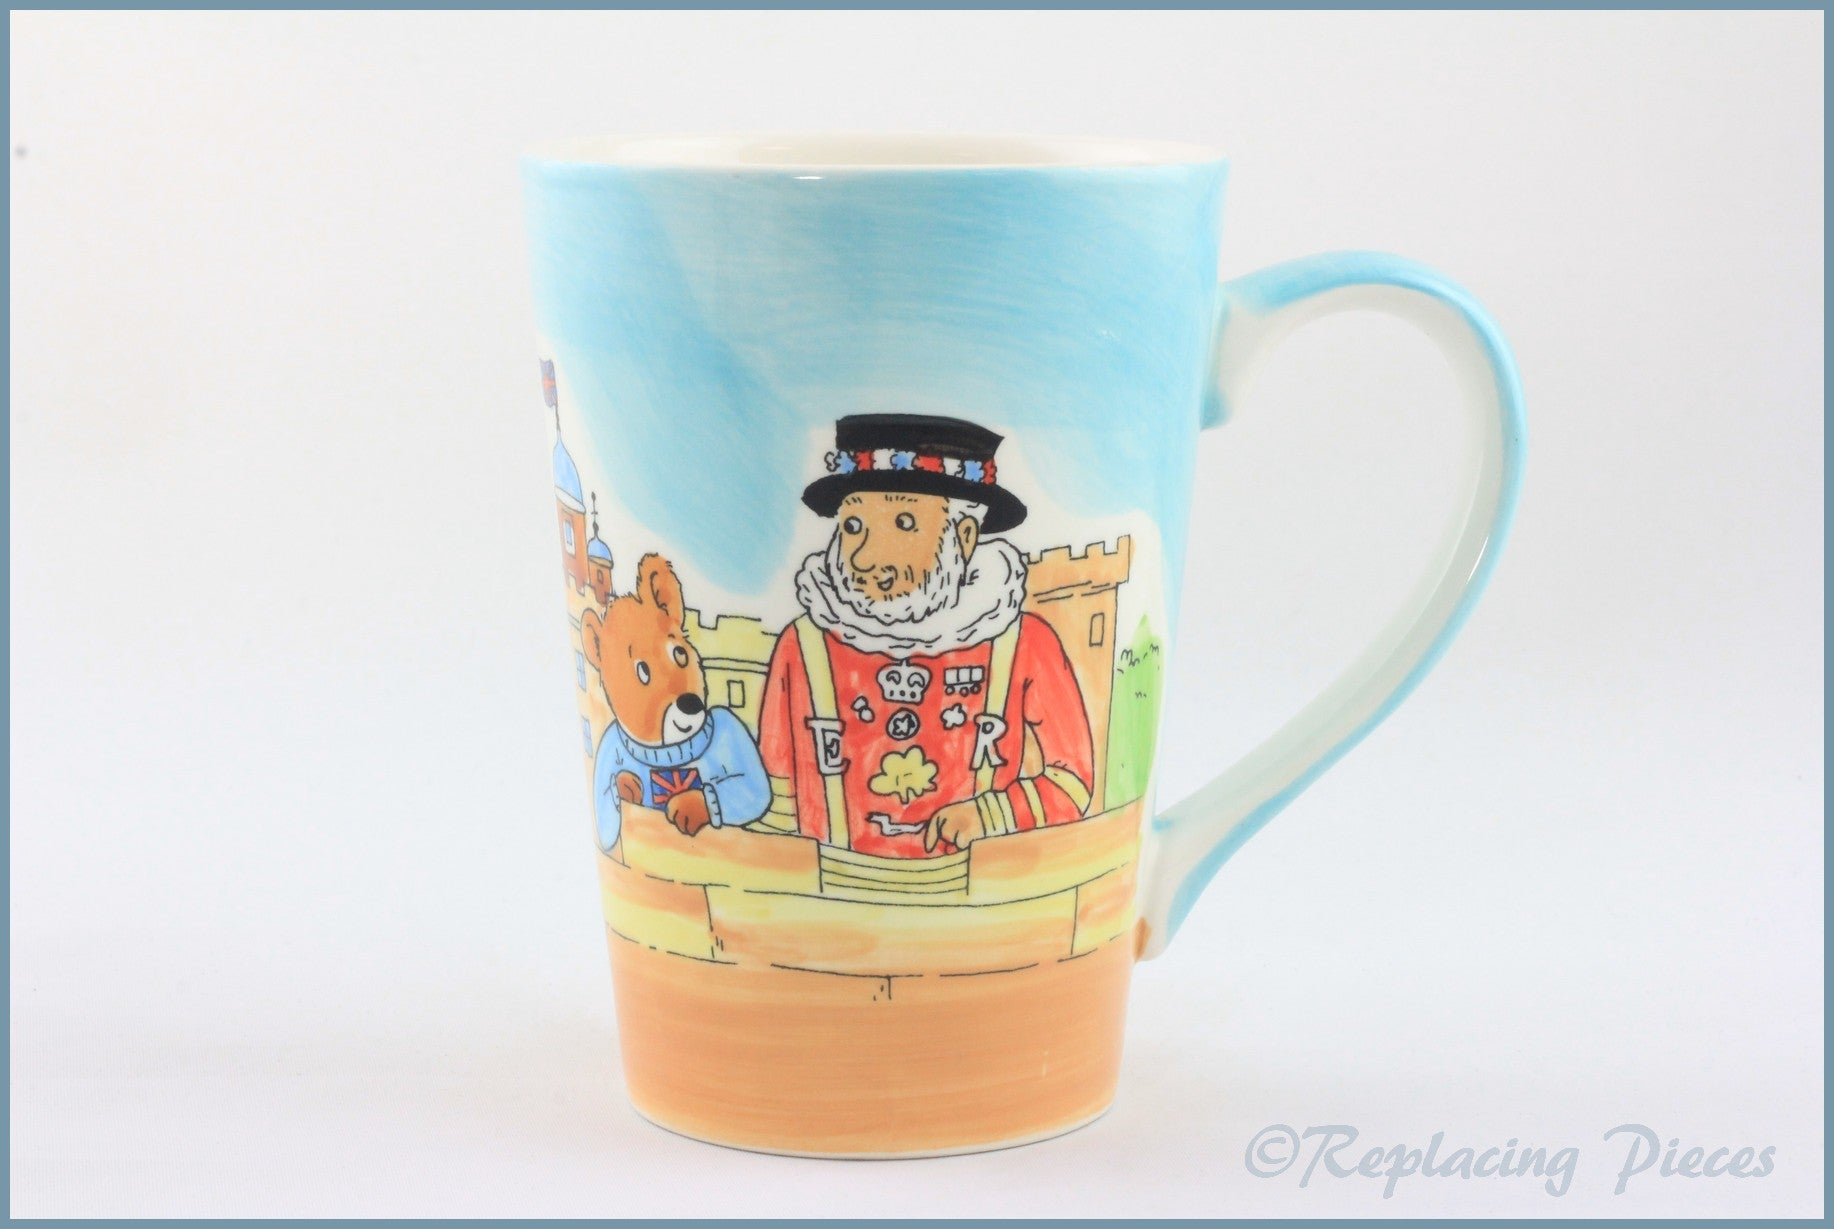 RPW85 - Whittards - Latte Mug (Tower Of London)